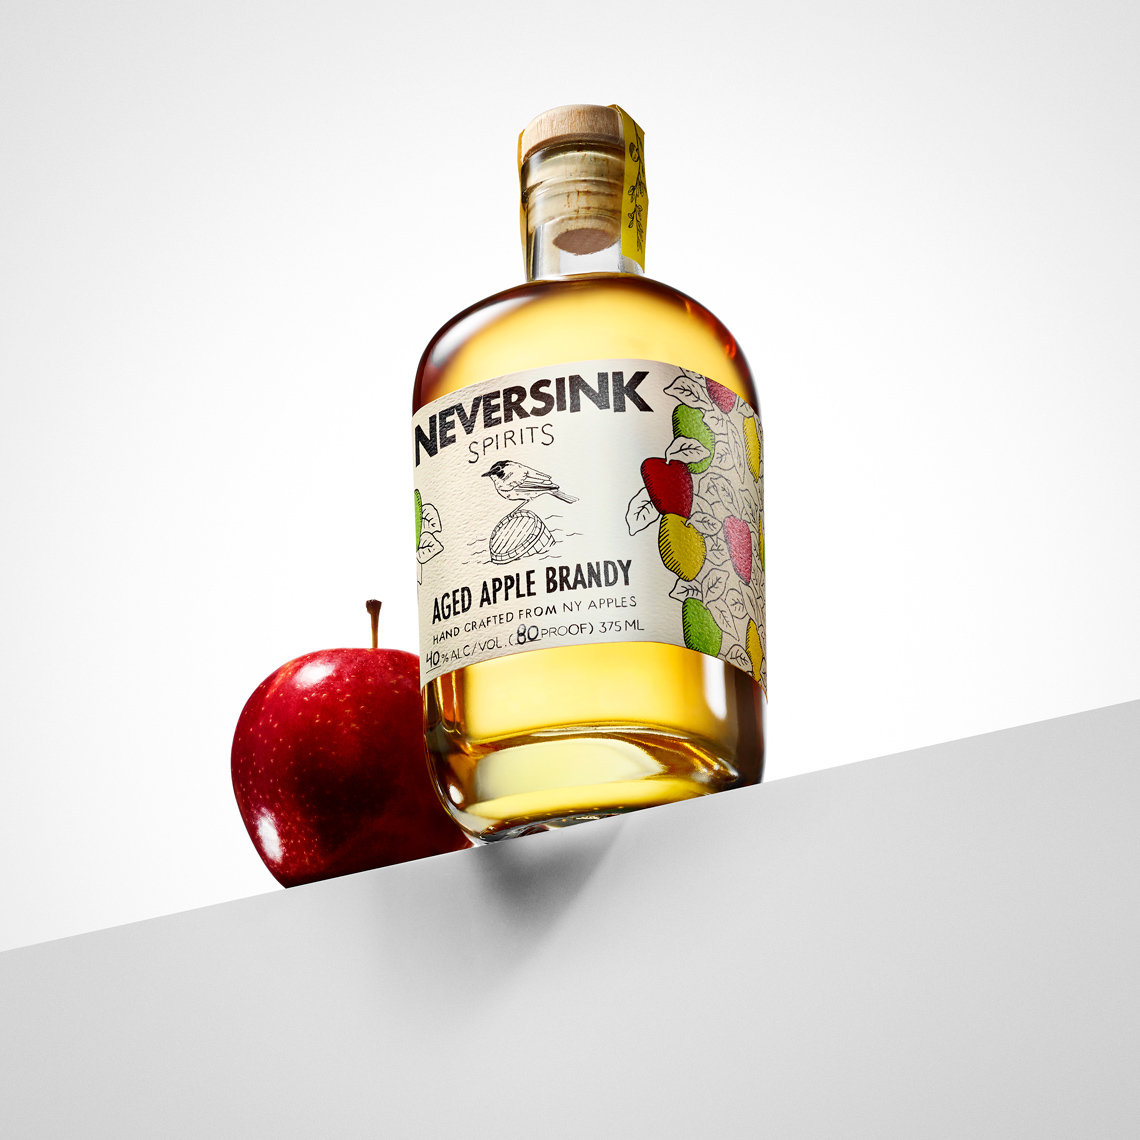 neversink_aged_apple_brandy_apple_web